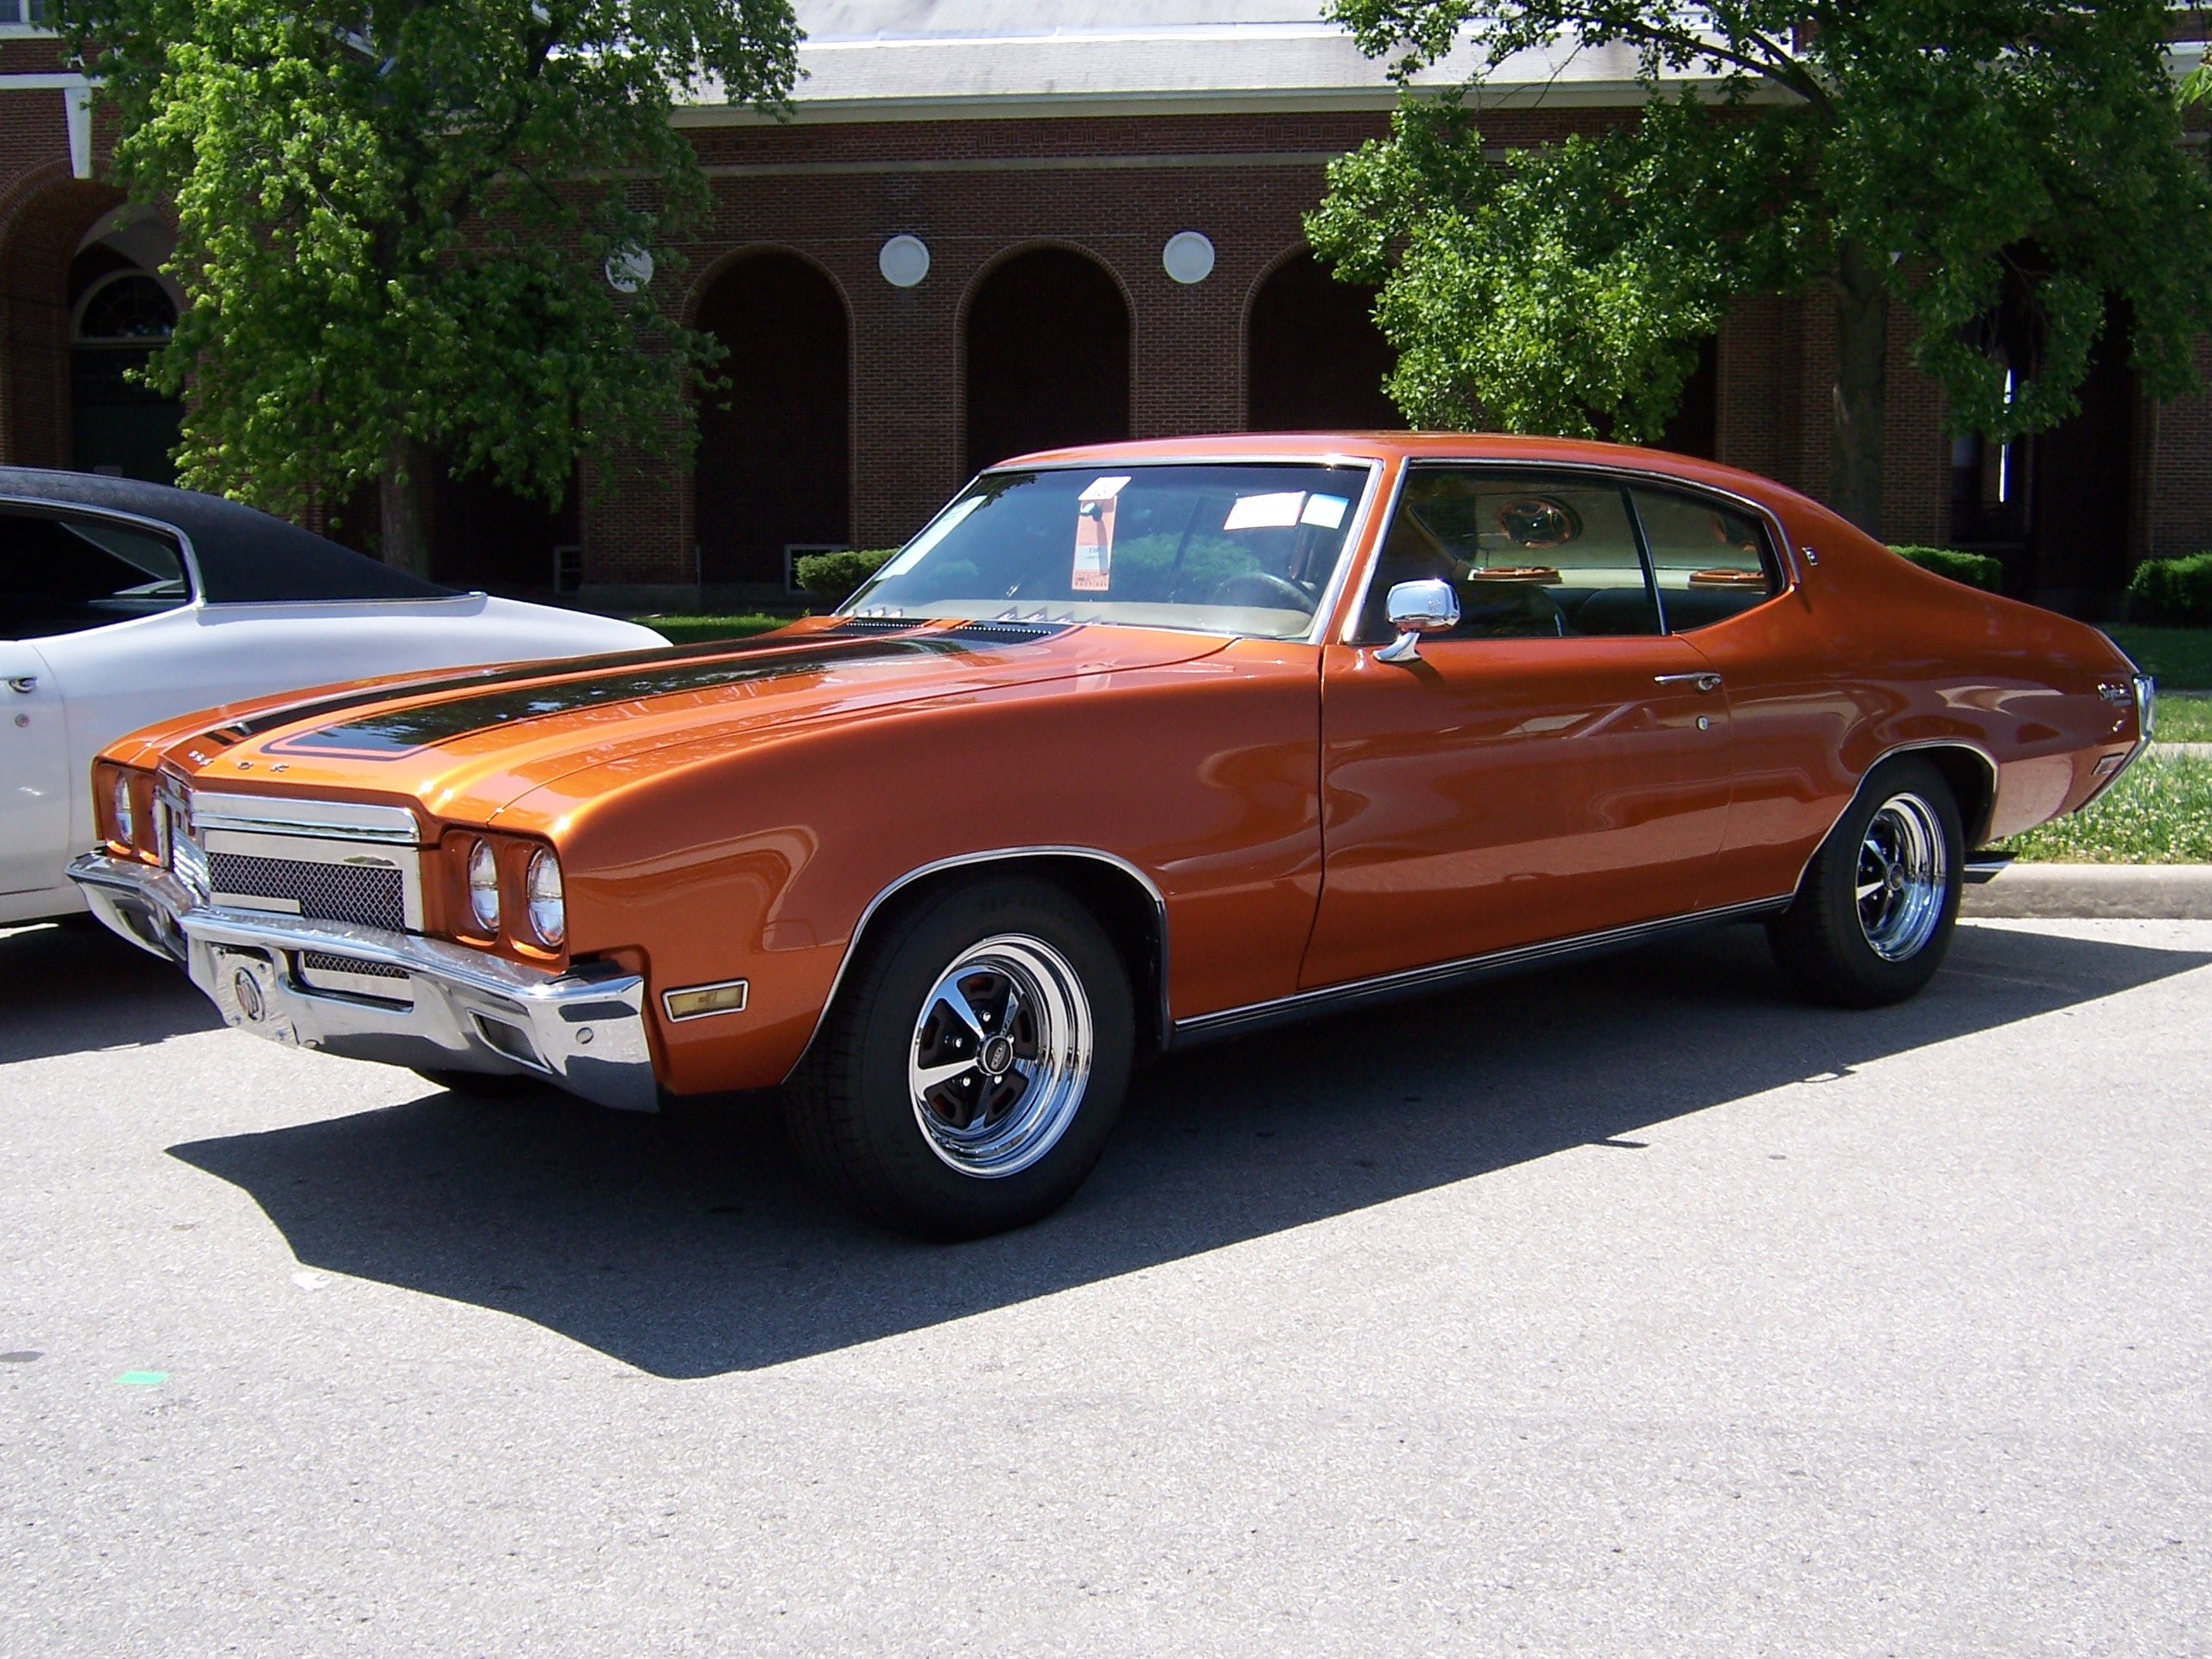 1970 buick skylark got to drive one of these looked almost exactly like this one